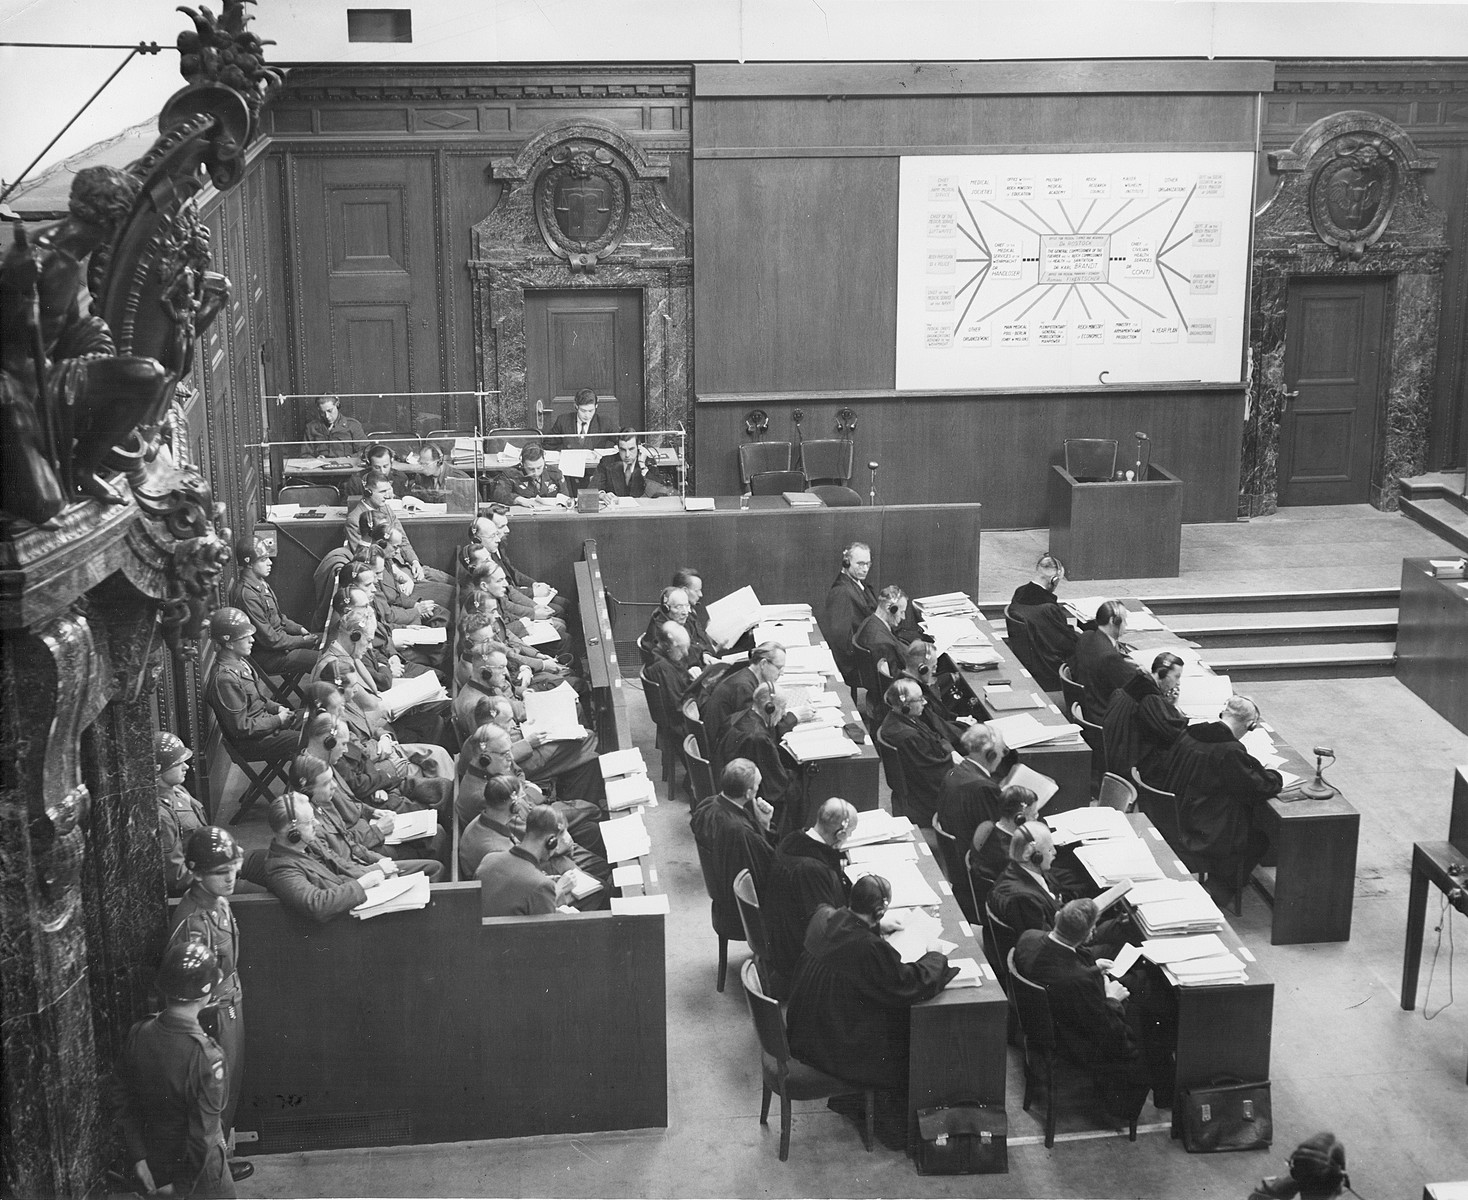 The defendants (left), their lawyers (center), the Military Tribunal I (right), and the prosecution (bottom), listen to the proceedings at a session of the Medical Case (Doctors') Trial in Nuremberg.  An evidentiary chart hangs on the wall.